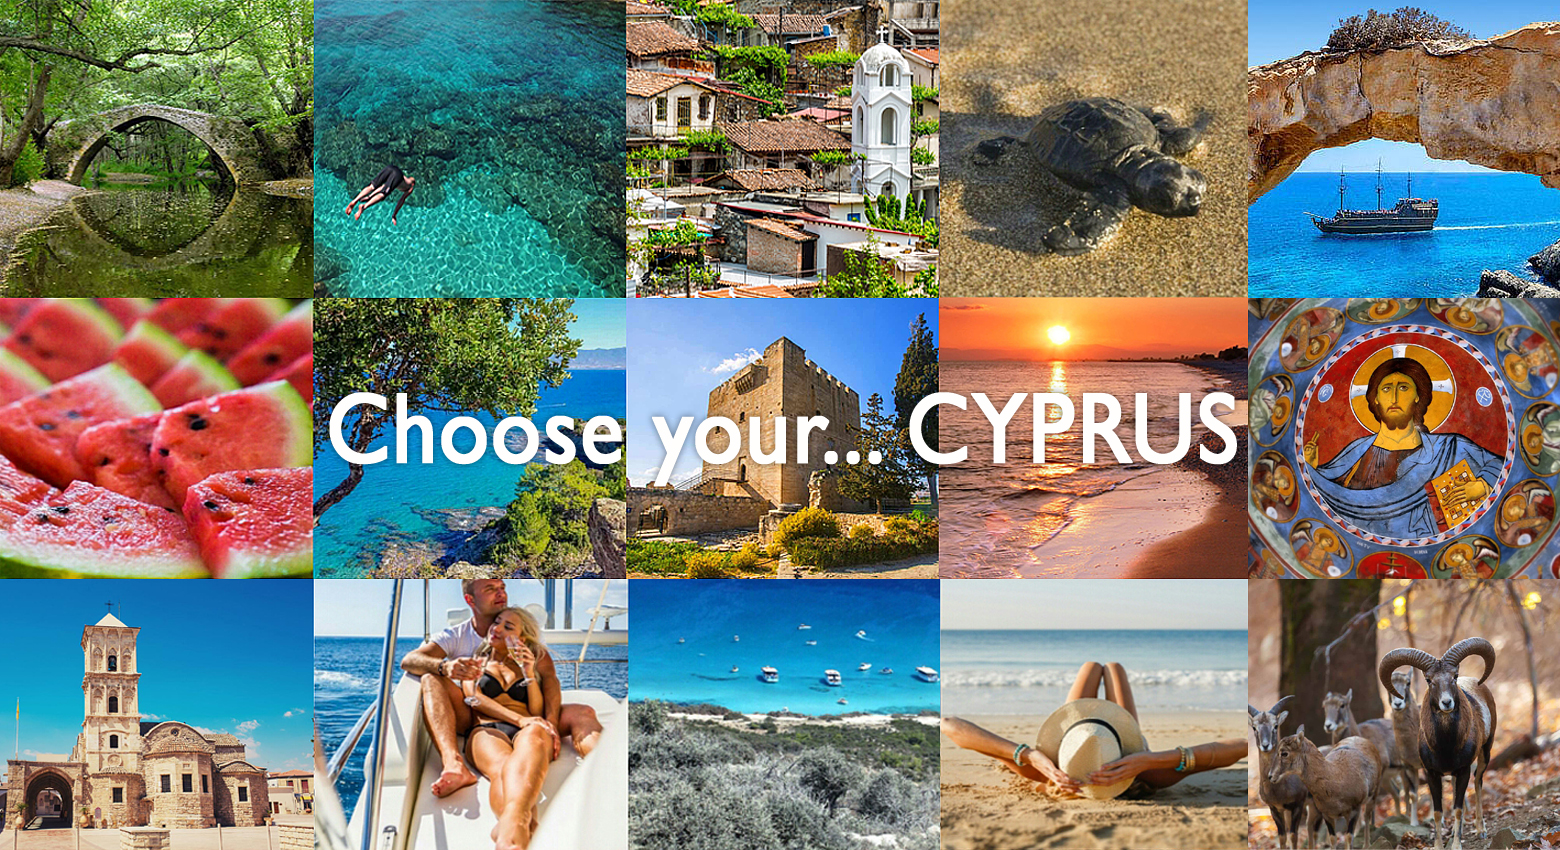 Choose your Cyprus APP13